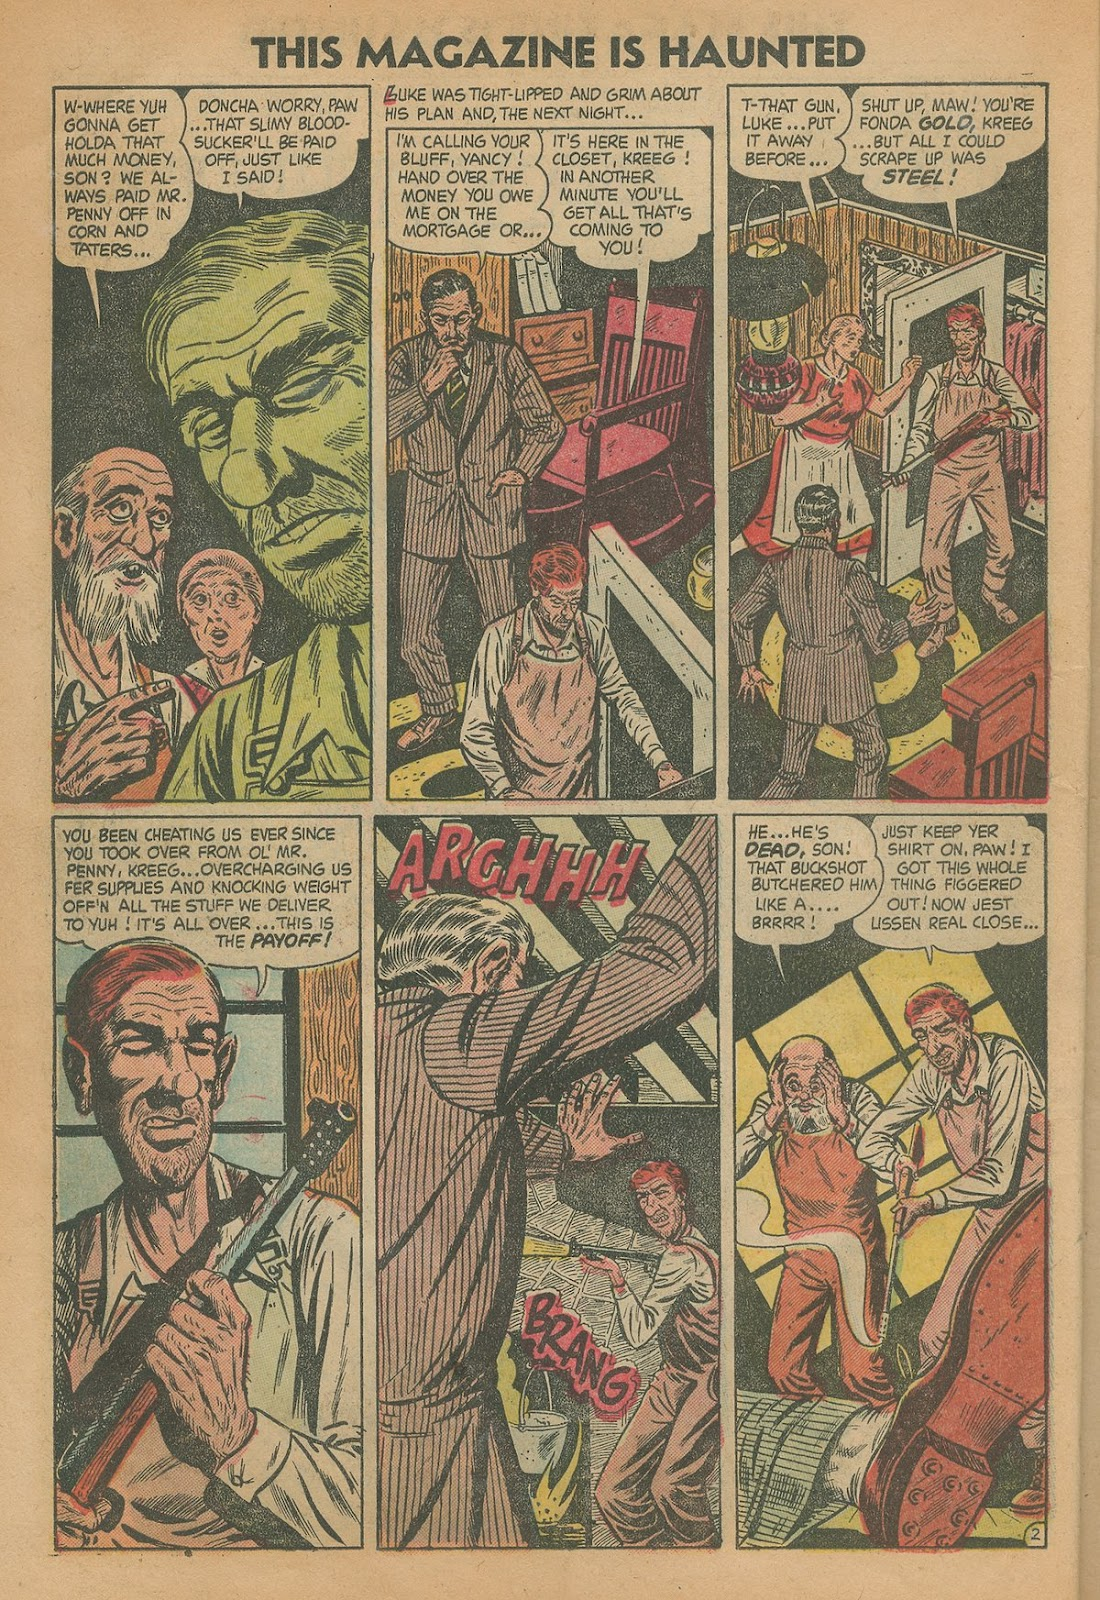 Read online This Magazine Is Haunted comic -  Issue #19 - 10